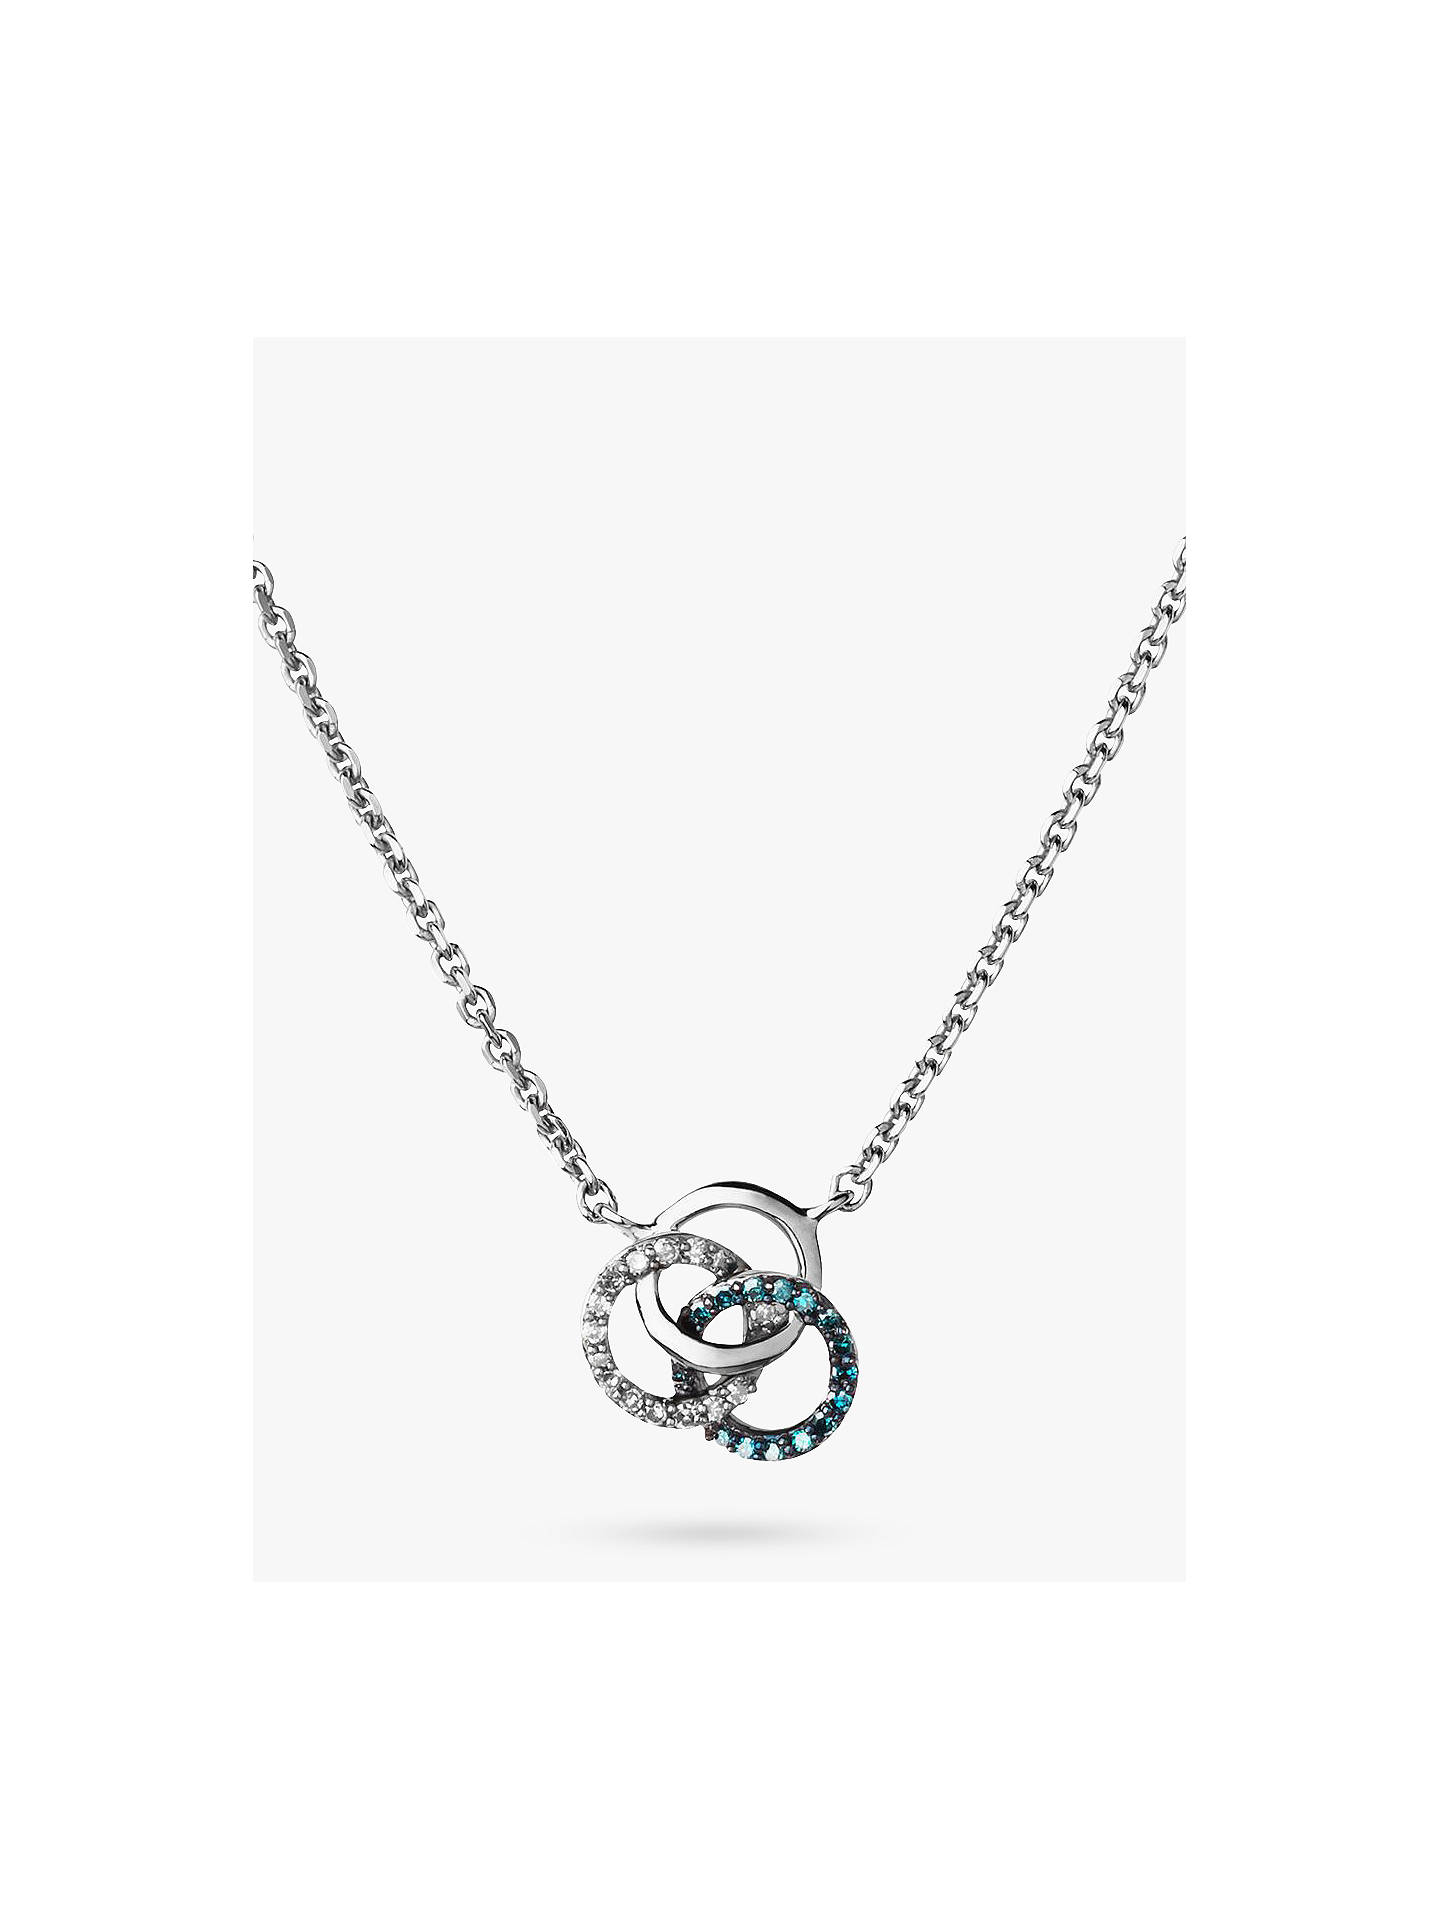 BuyLinks of London Treasured Diamond Pave Interlocked Ring Pendant Necklace, Silver/Multi Online at johnlewis.com